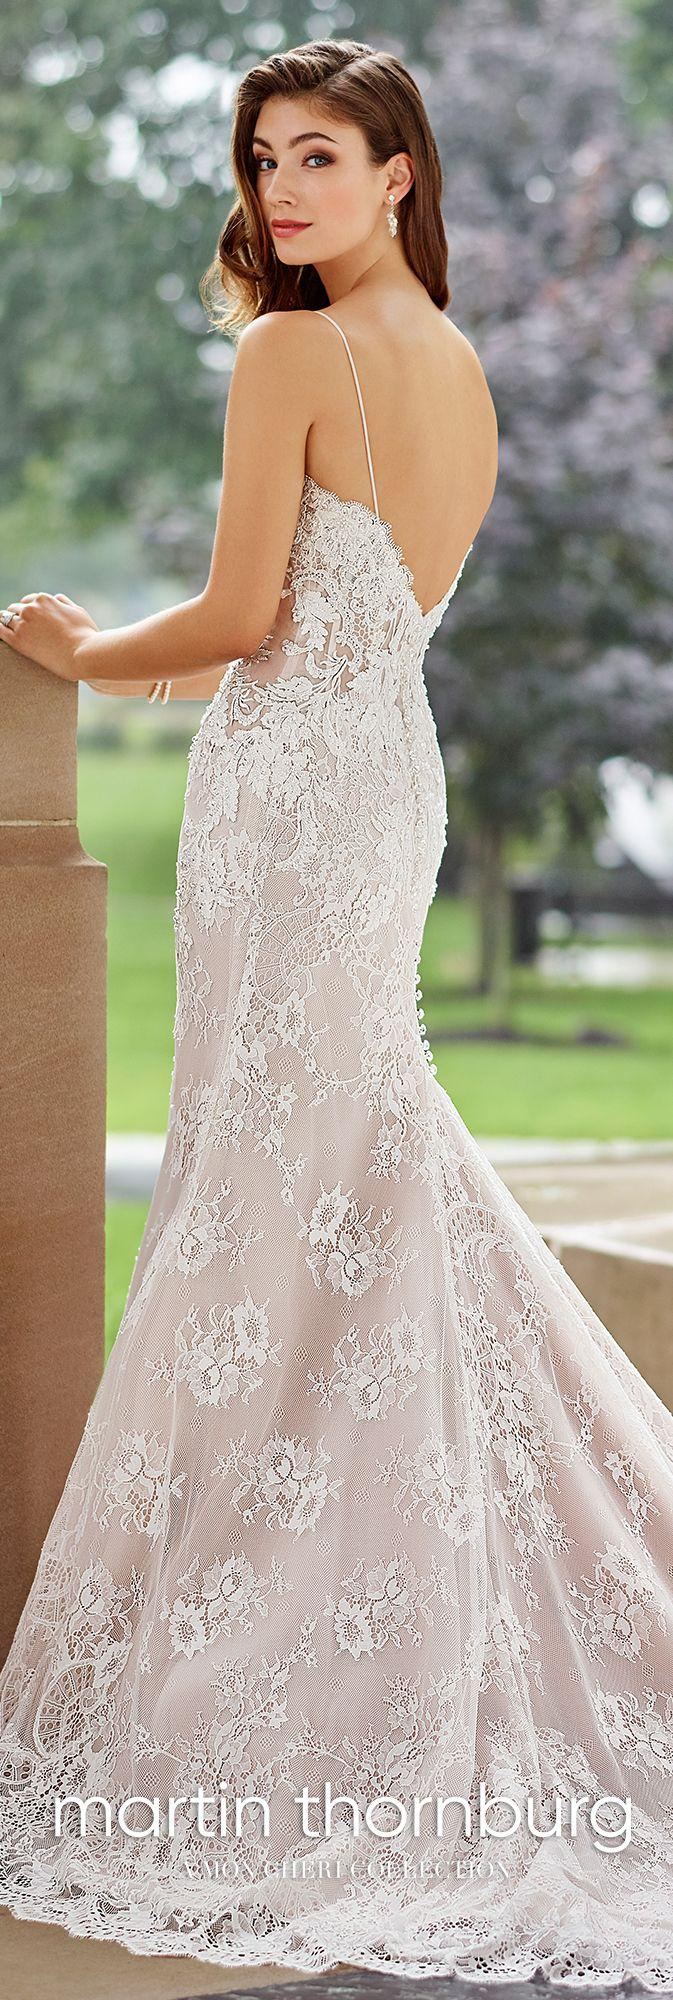 Hochzeit - Allover Lace & Organza Fit & Flare Wedding Dress- 118270 Cabaletta